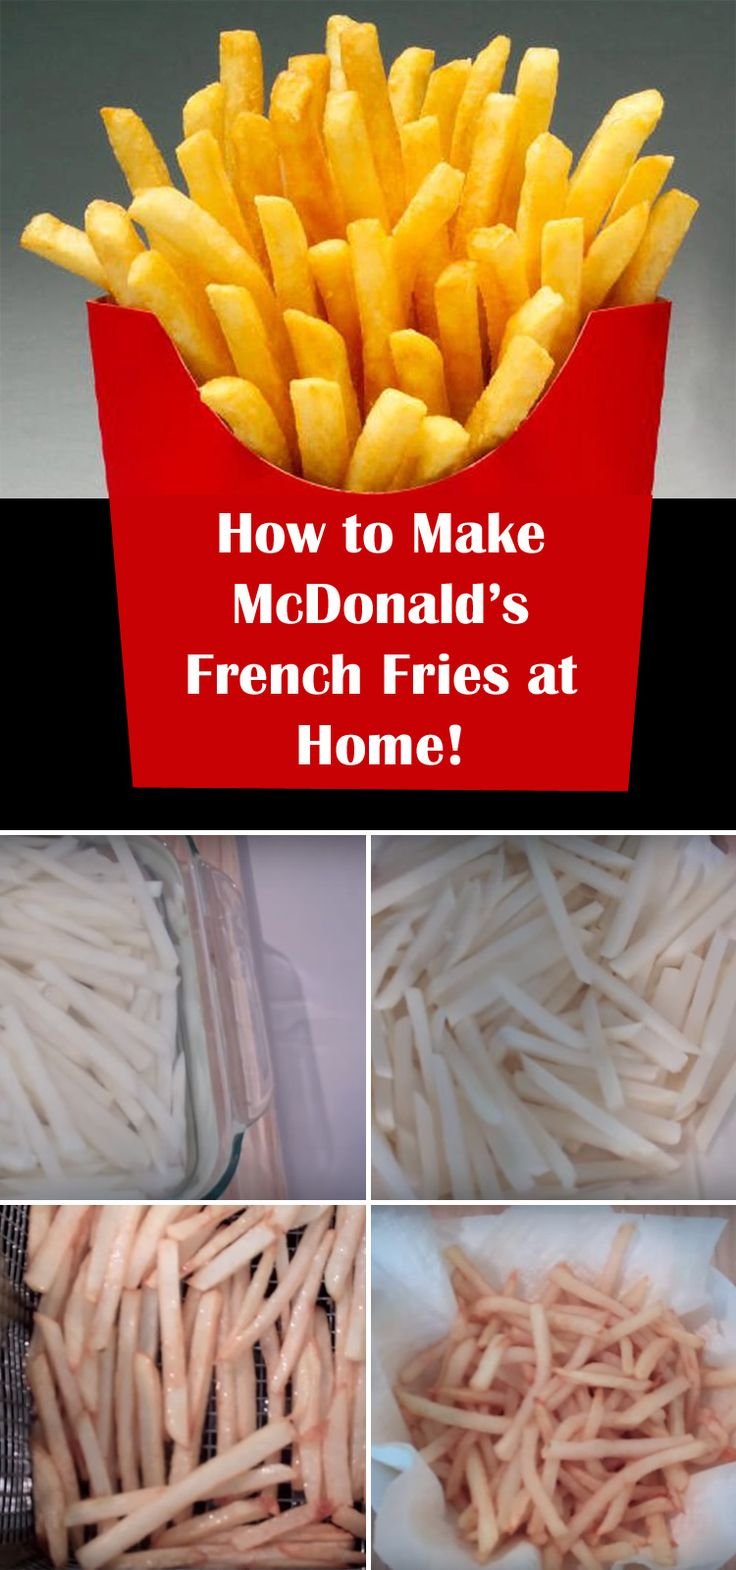 How to Make McDonald's Fries at Home!